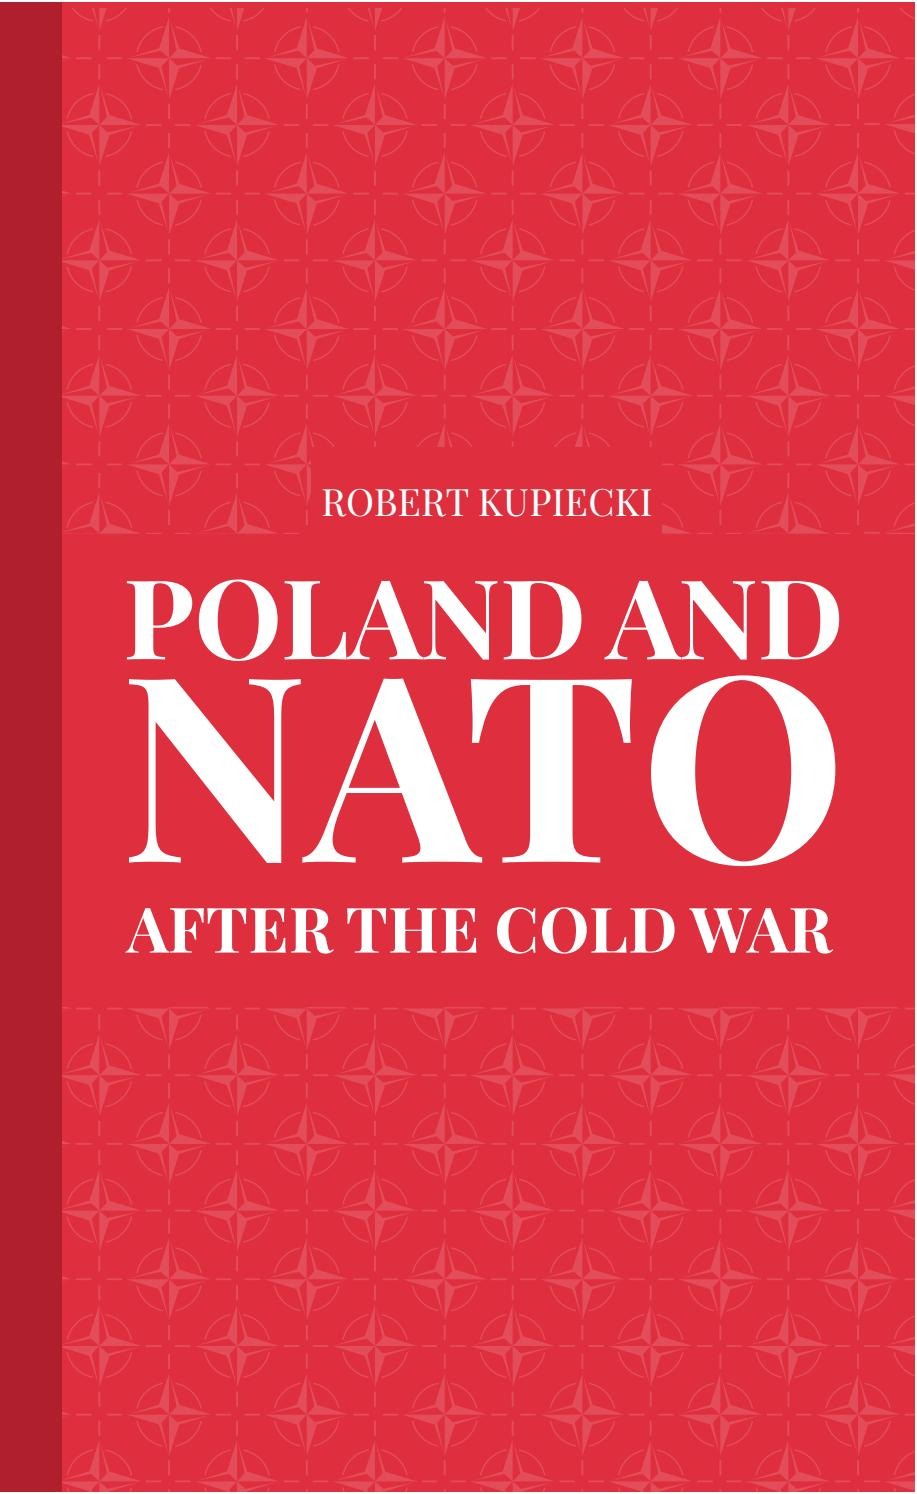 Poland and NATO after the Cold War by Ministry of Foreign Affairs of